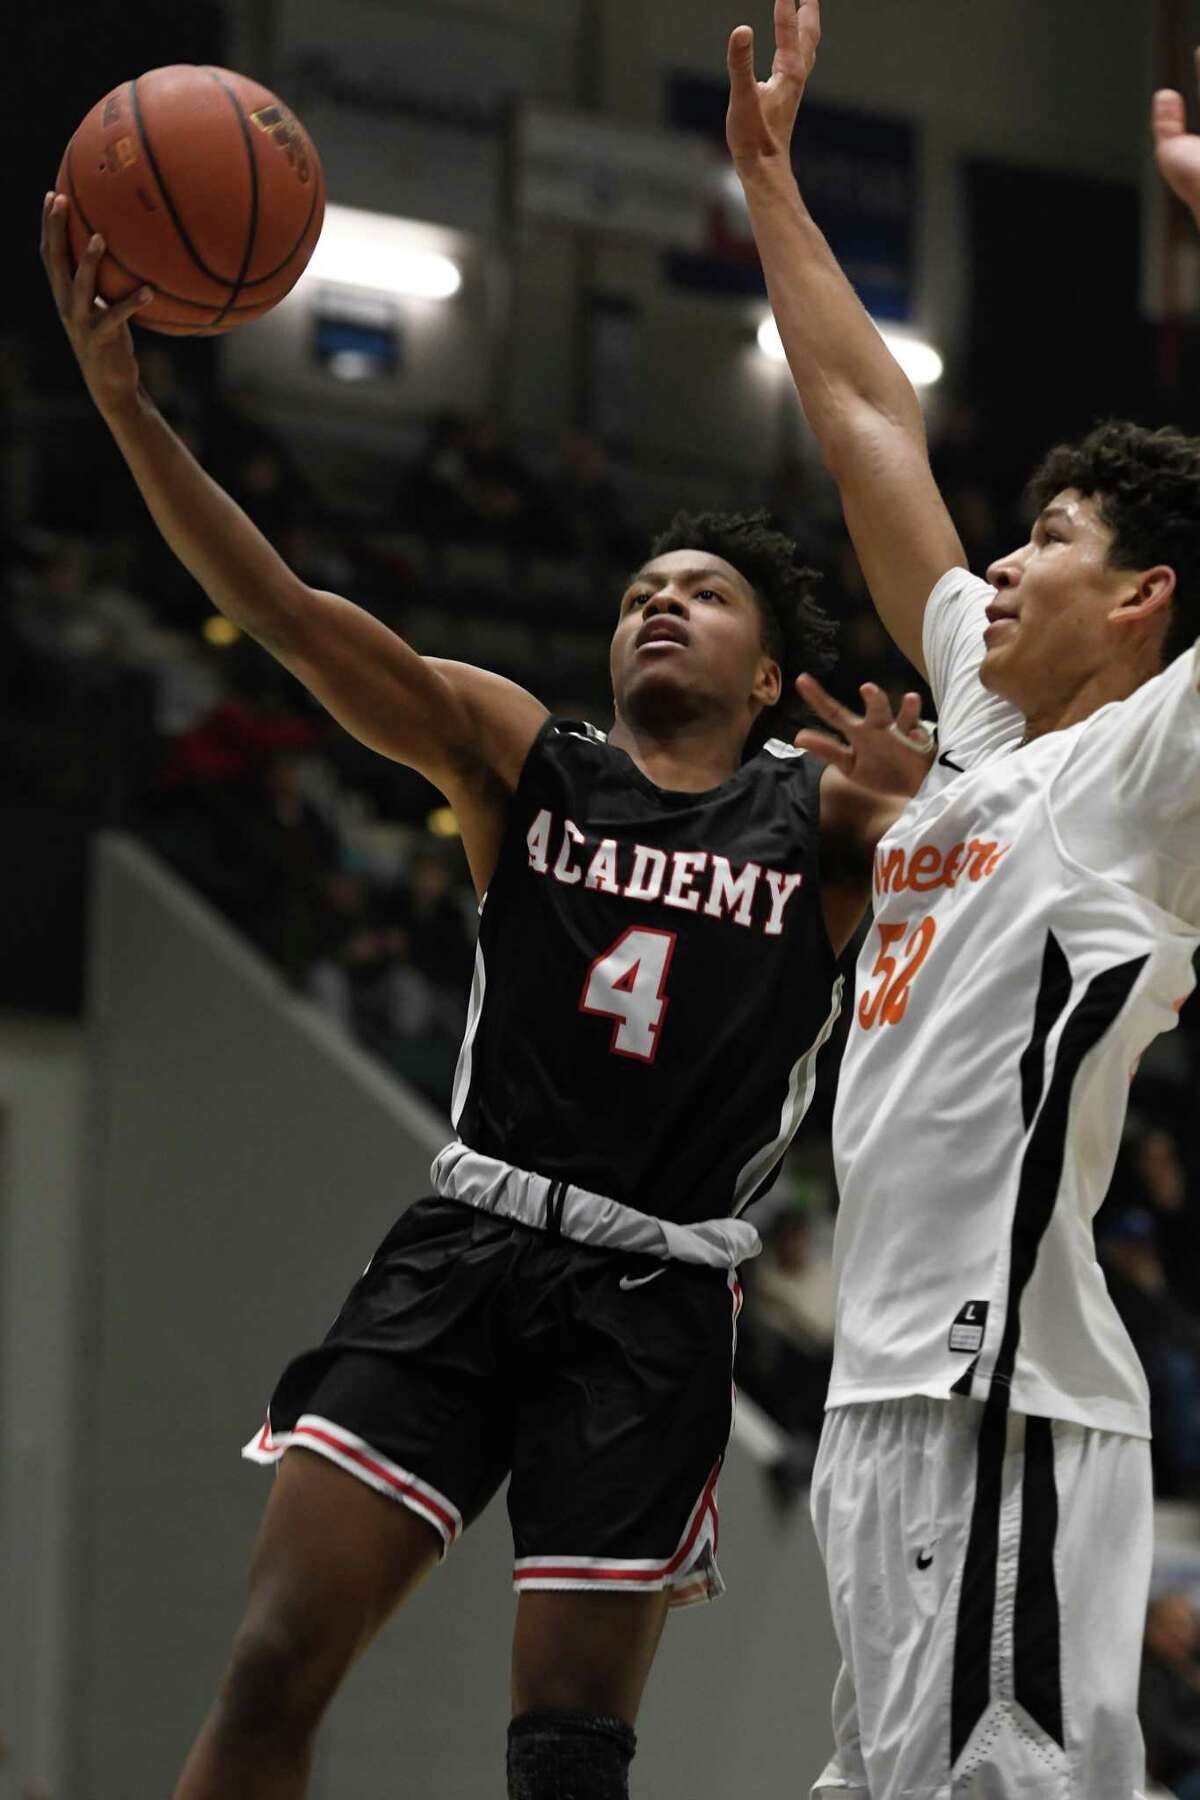 Park School's Caleb Hutchins guards Albany Academy's Isaiah Danzy as he takes a shot during a game of the Zero Gravity Slam North-South Classic in Glens Falls, N.Y., on Sunday, Jan. 27, 2019. (Jenn March, Special to the Times Union)